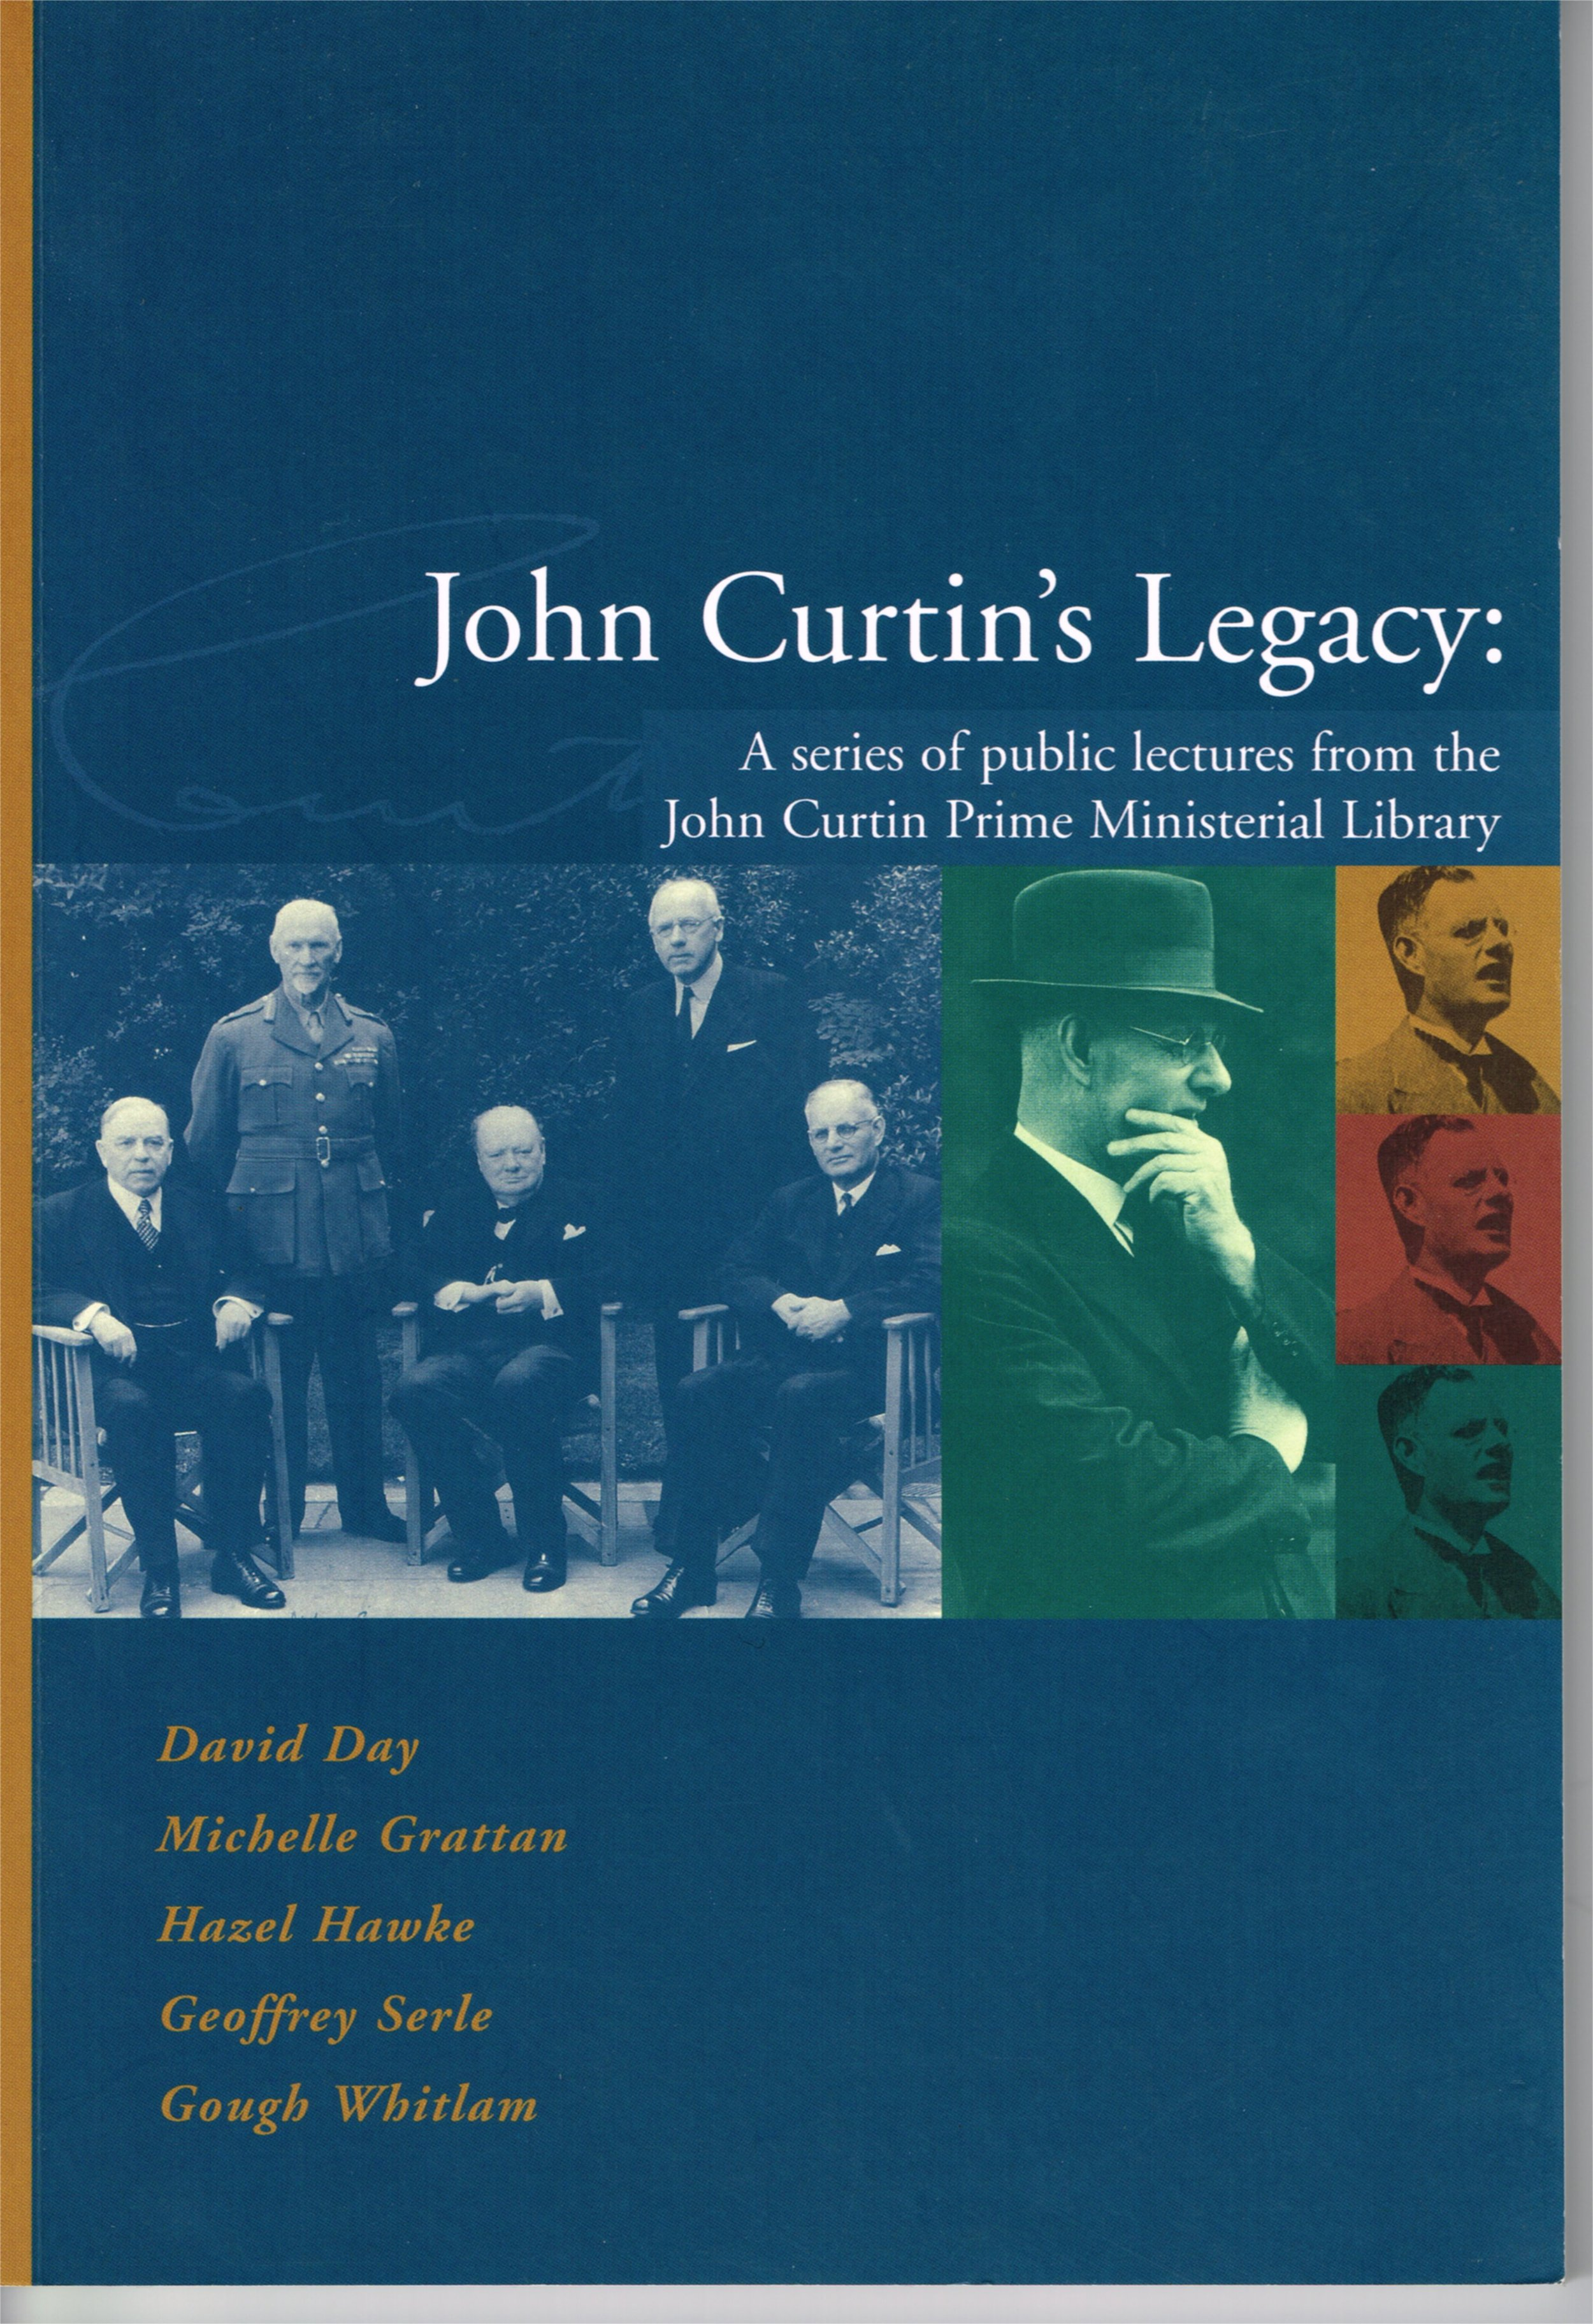 John Curtin's Legacy : A series of public lectures from the John Curtin Prime Ministerial Library  David Day, Michelle Grattan, Hazel Hawke, Geoffrey Serle, Gough Whitlam